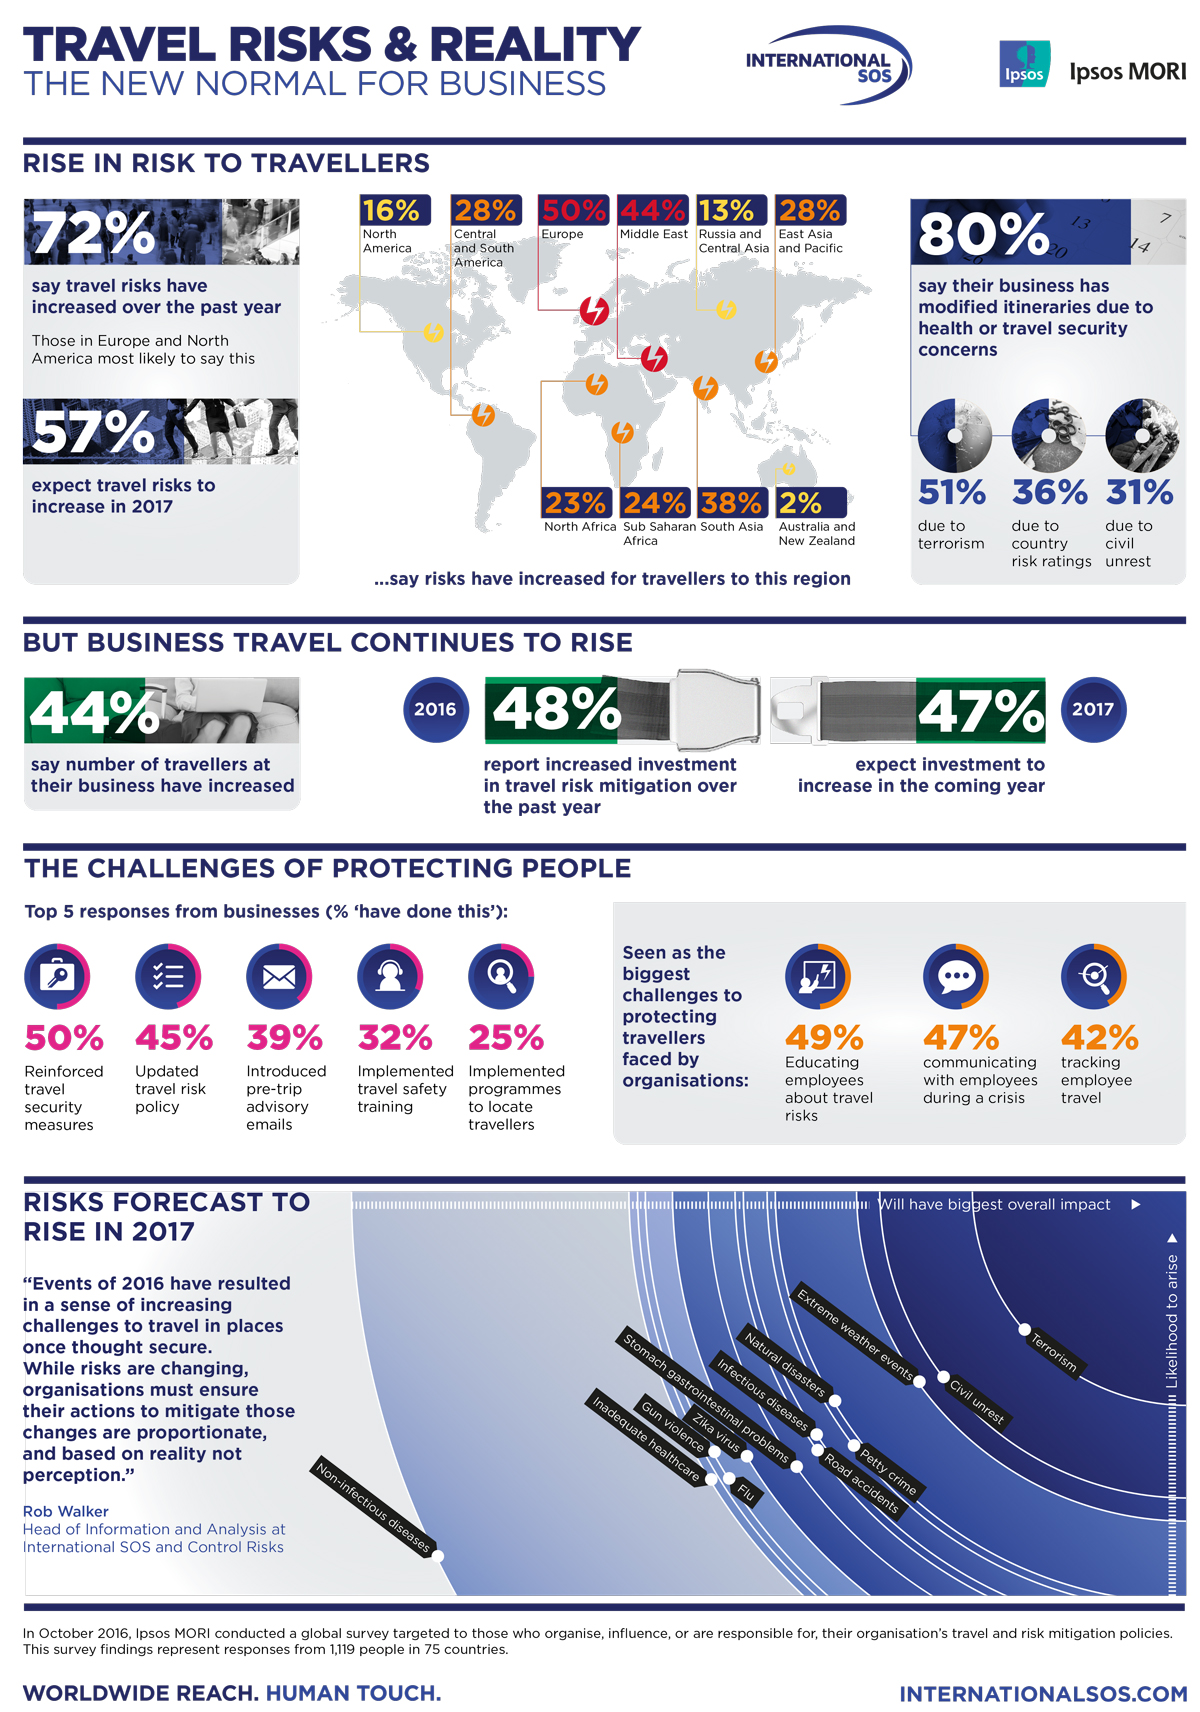 international-sos-and-control-risks-2017-infographic